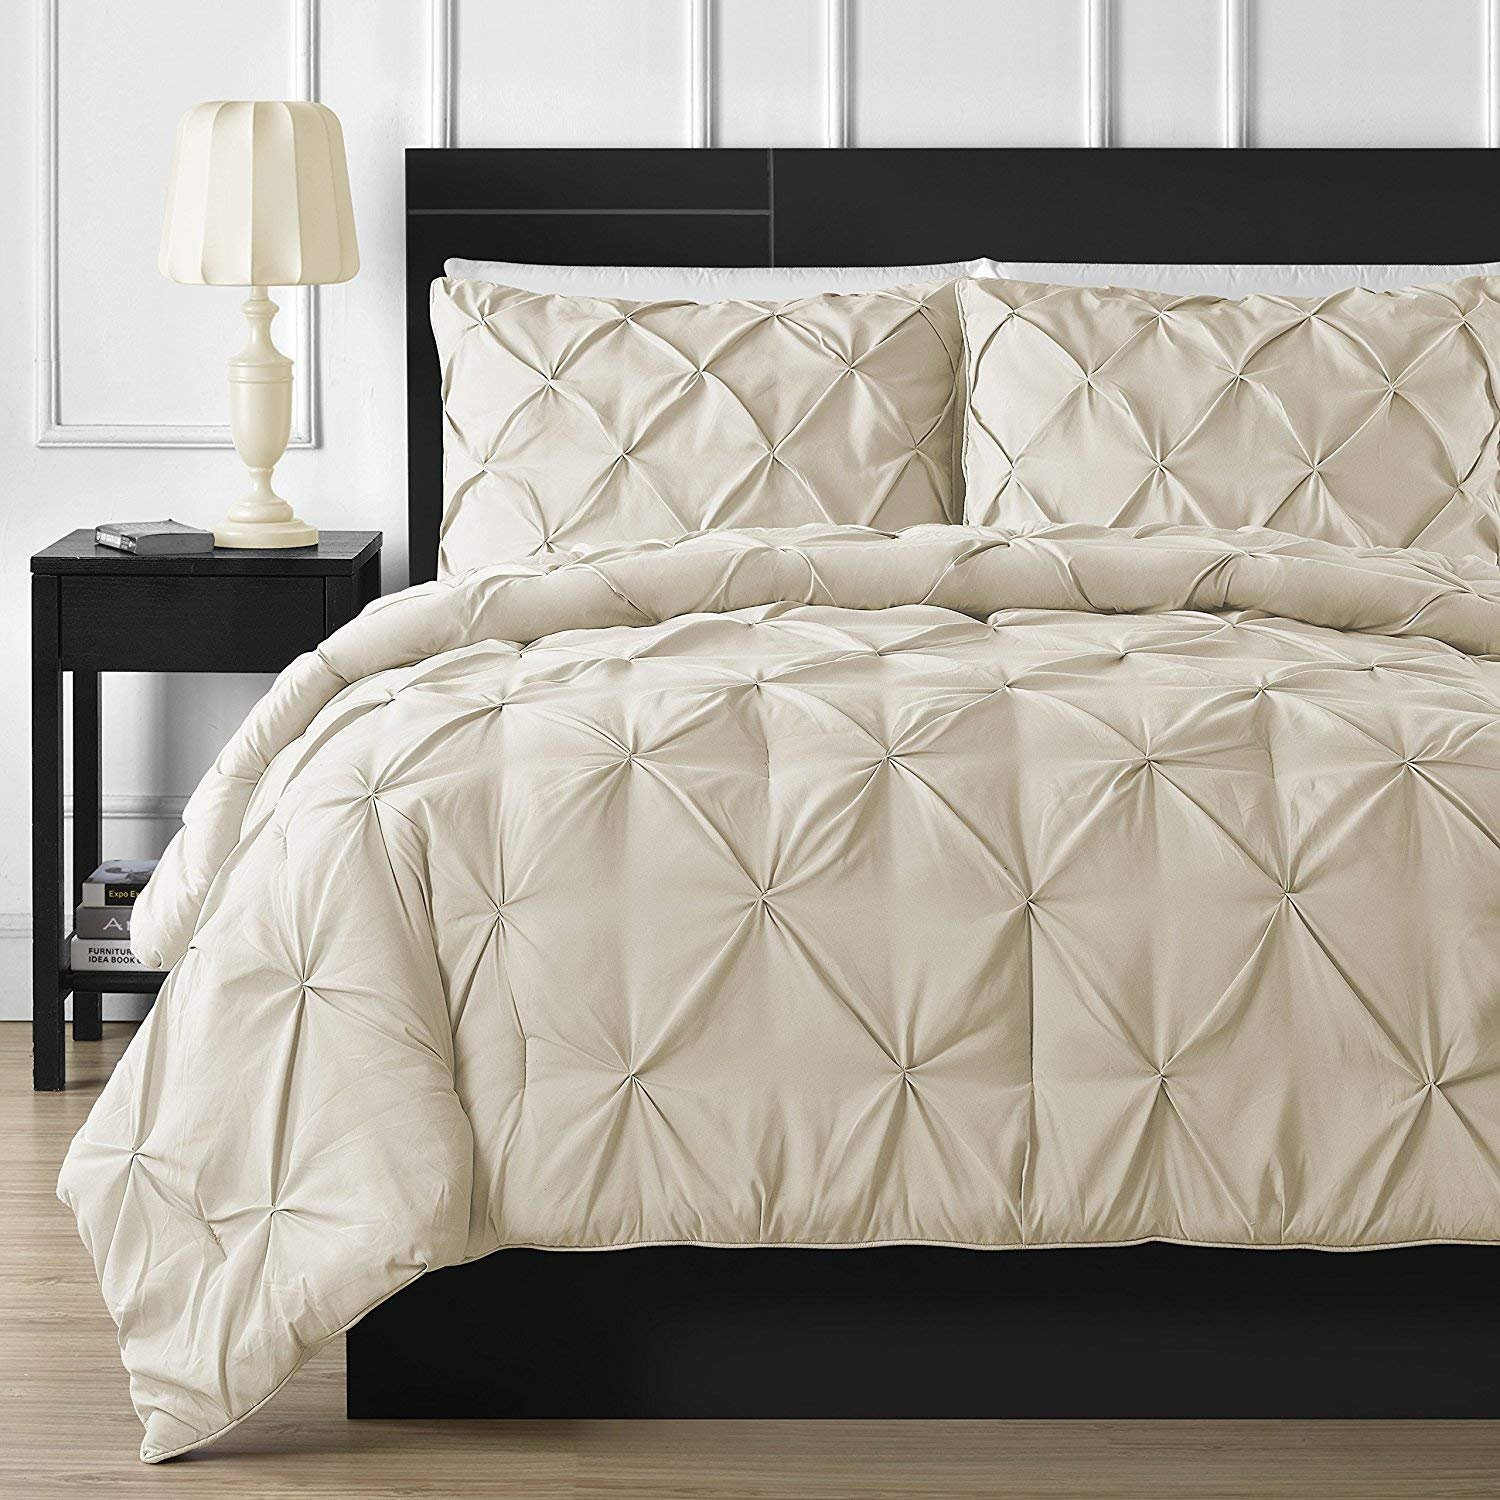 Bedding Kraft Soft Reliable Luxurious Pinch Pleated Duvet Cover 100% Egyptian Cotton 800 TC Stain Resistant & Hypoallergenic Comforter Cover (Oversized King (98 x 120 Inch) (1-Piece), Ivory)